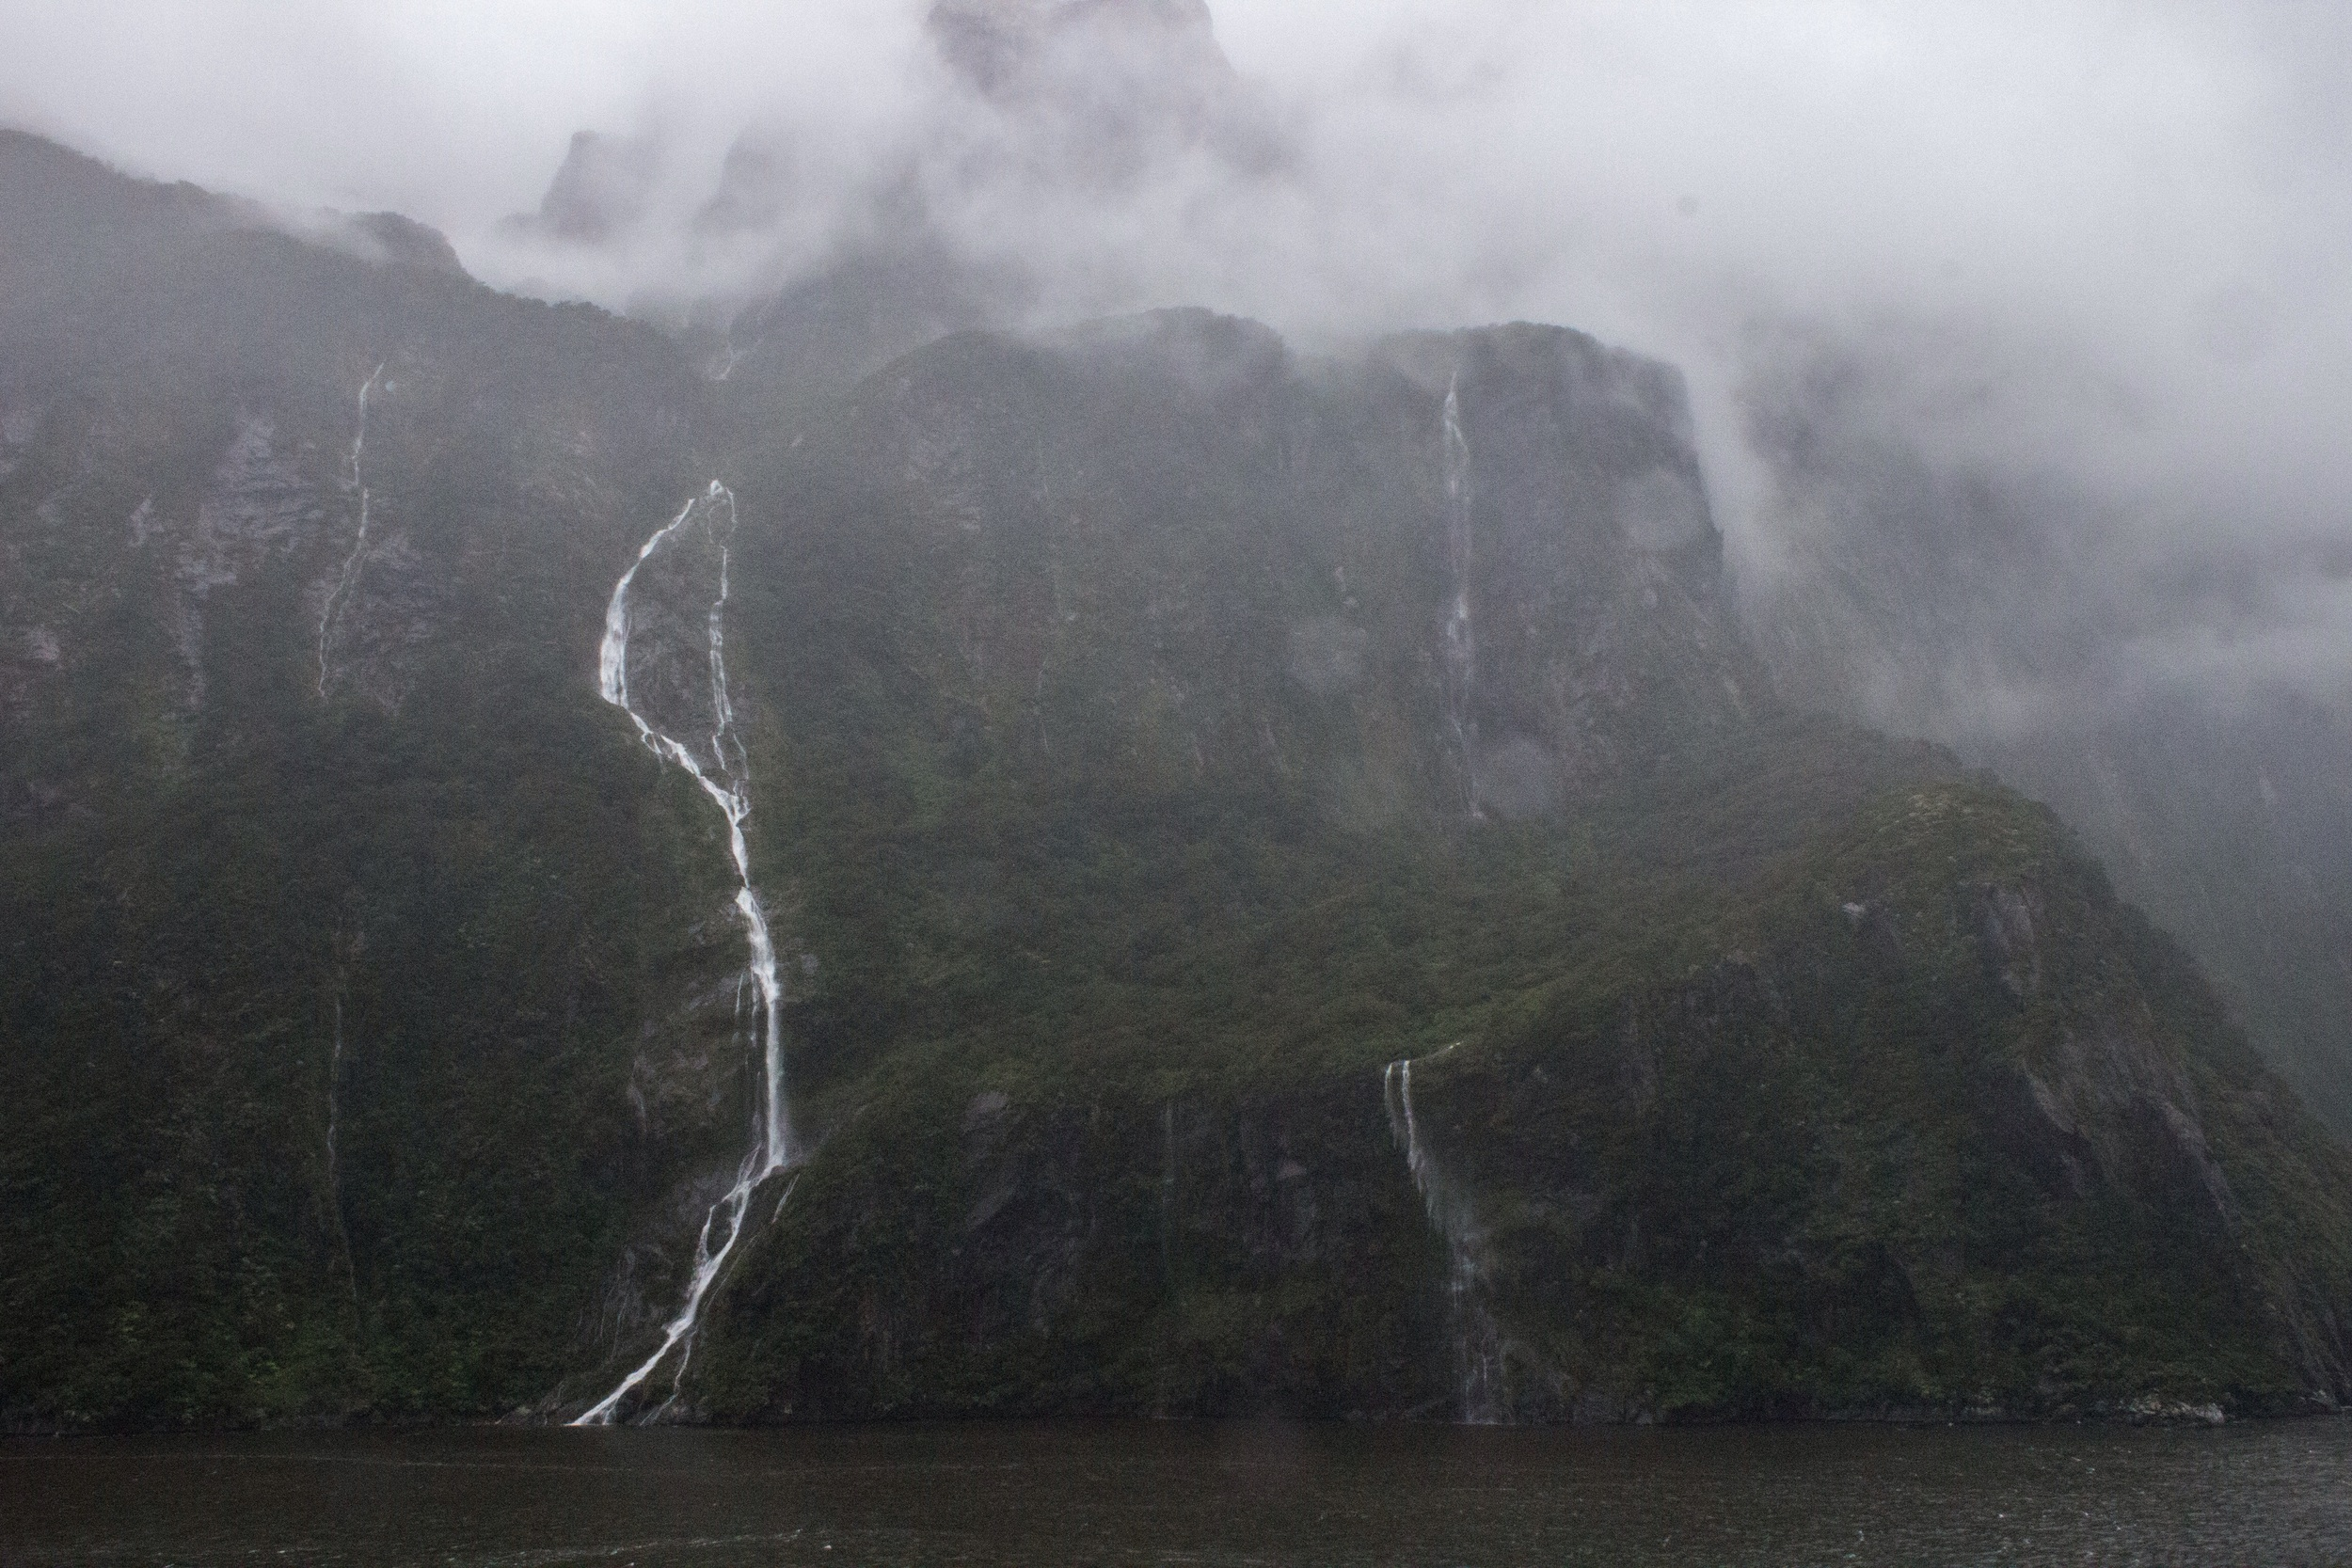 Rain and the rainforest. Milford Sound, New Zealand.